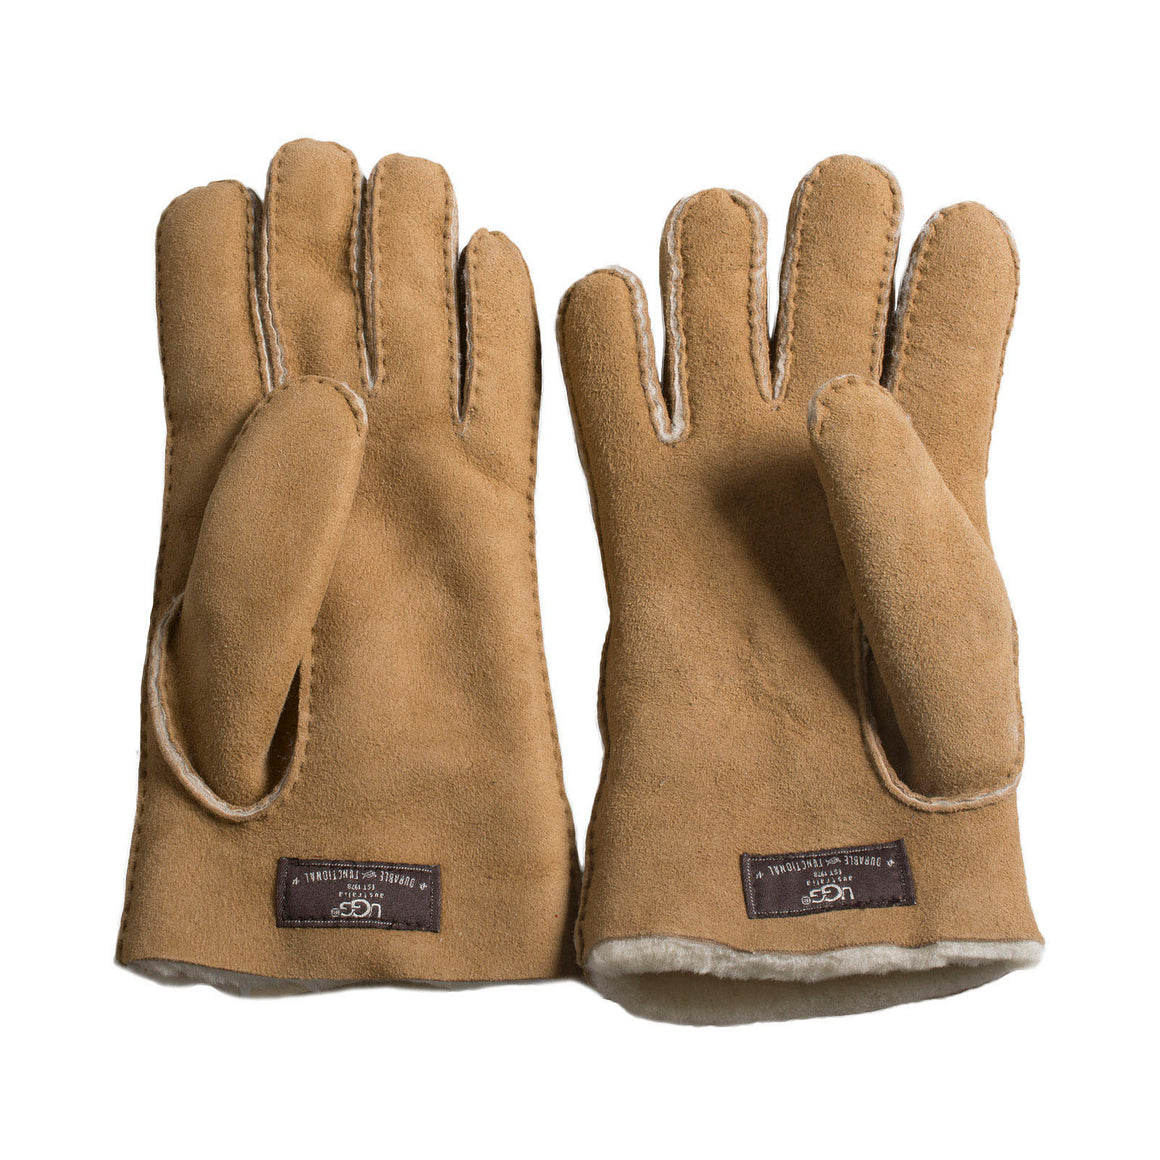 UGG Shearling Without Points Chestnut Gloves - Men's